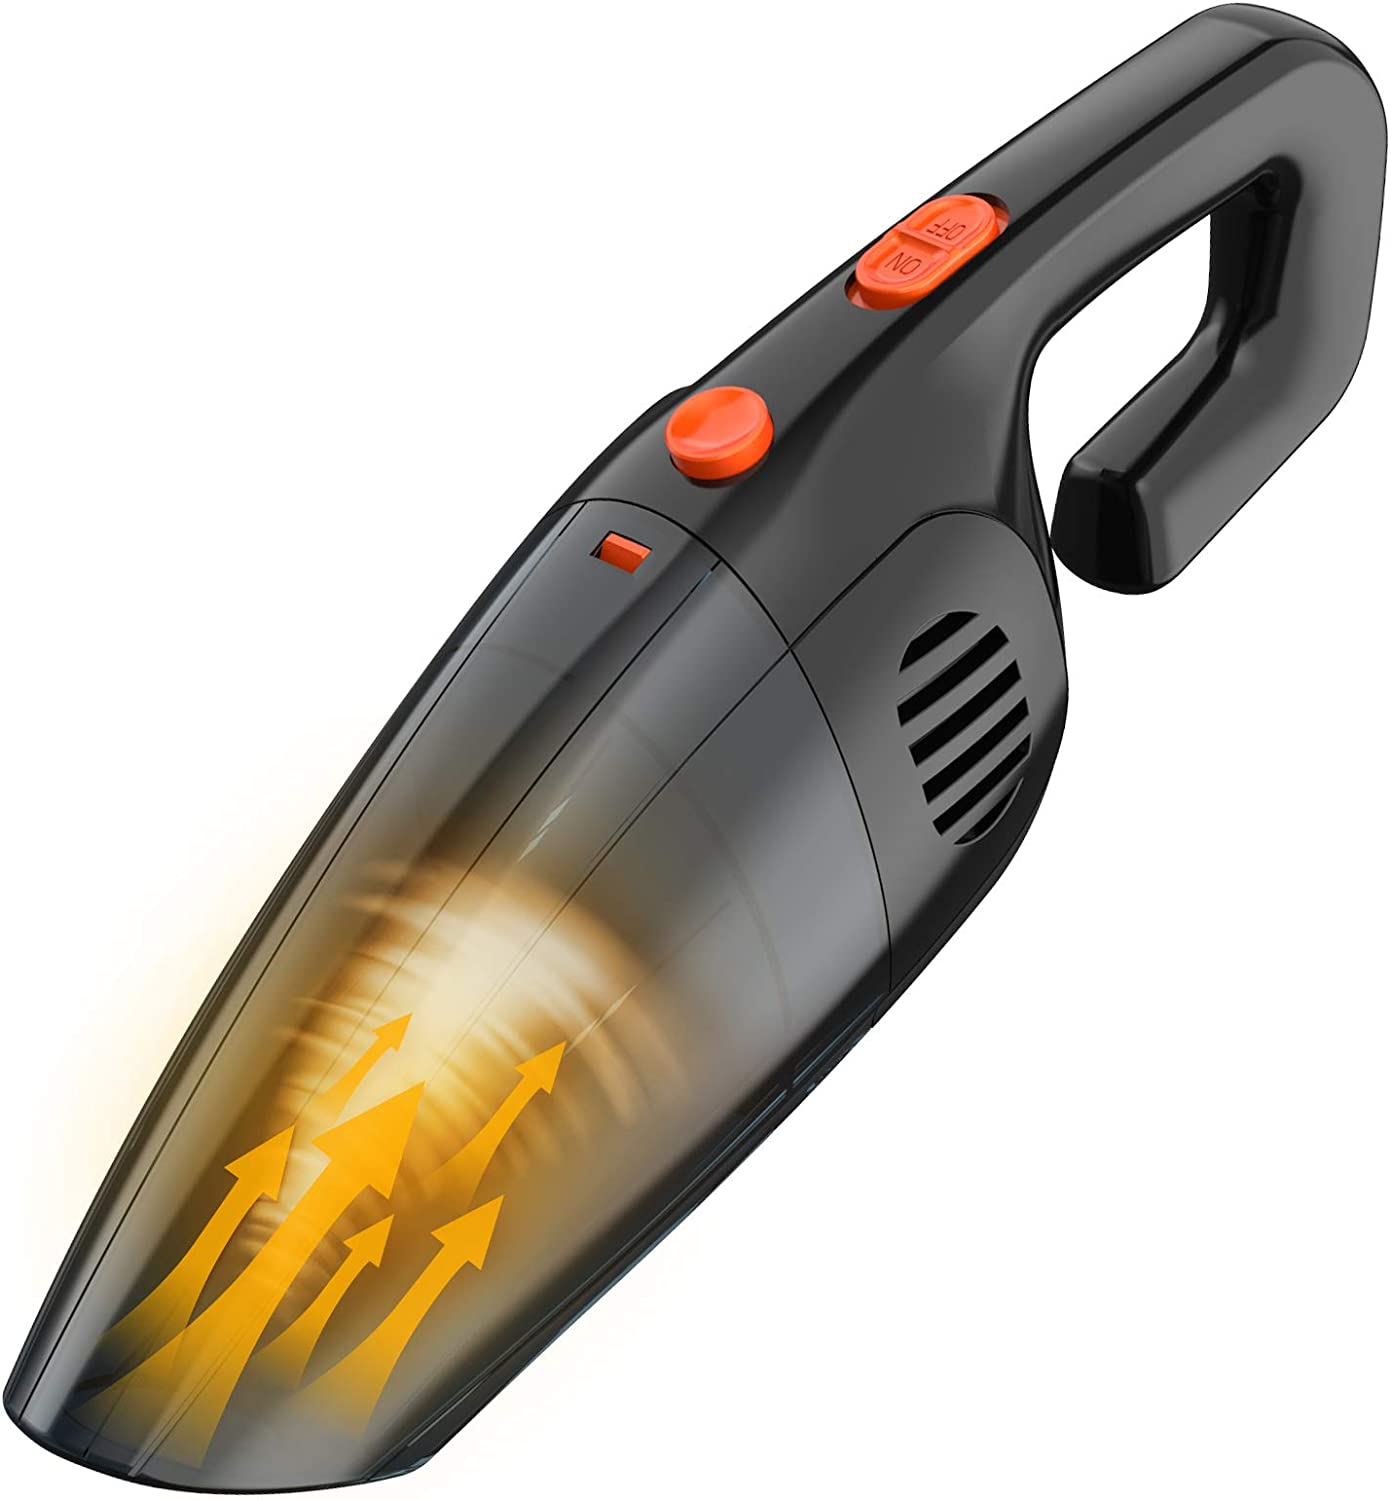 XUCOO Cordless Car Vacuum Cleaner - Portable Vacuum Cleaner for Car - 8000PA High Power Handheld Vacuum USB Charging - Wet/Dry Use,Rechargeable,2200mAh Lithium Battery - Black